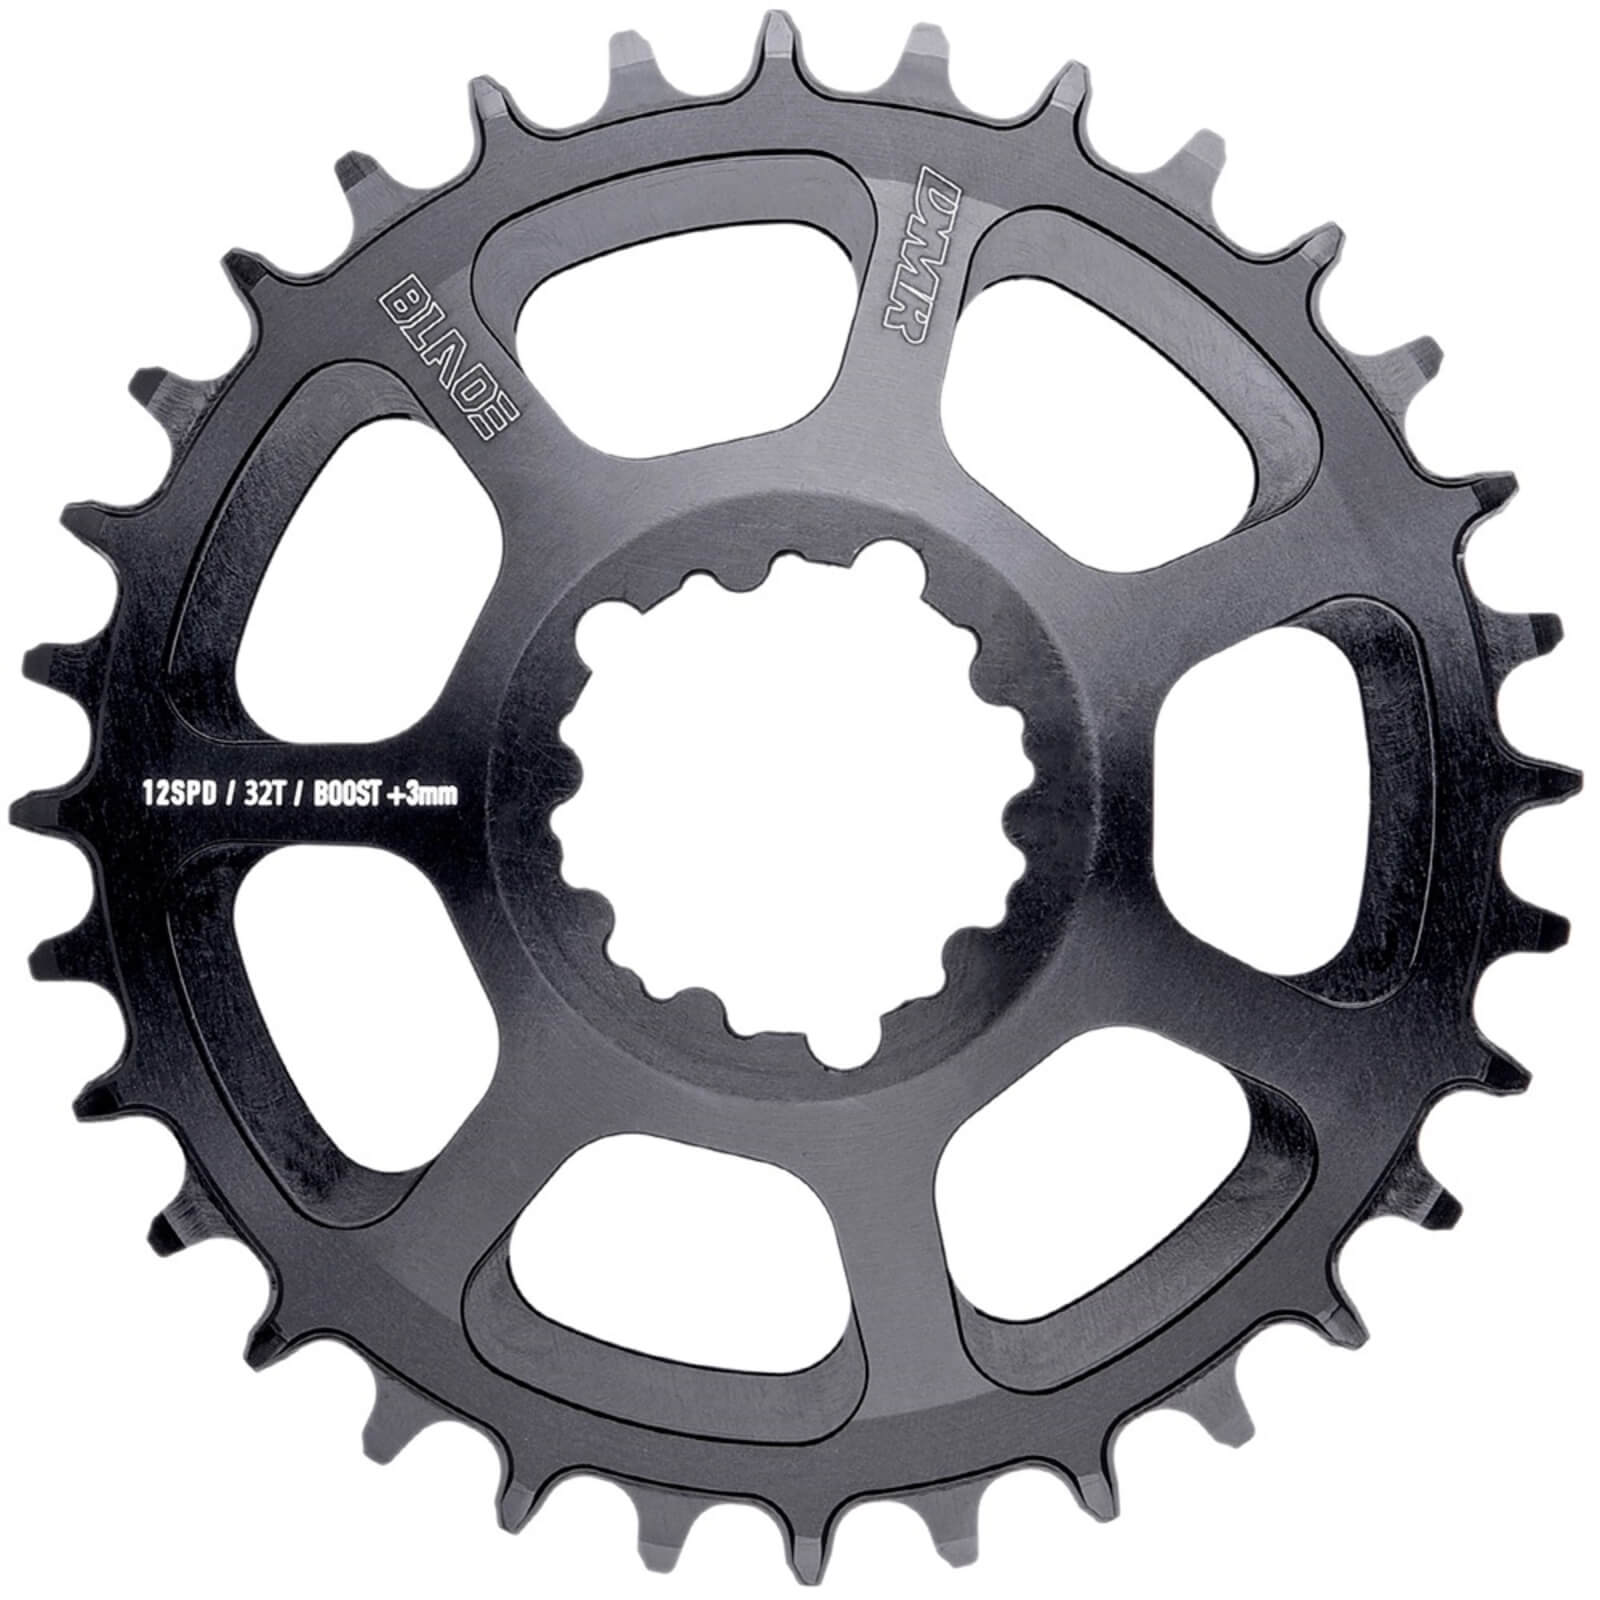 Dmr Blade 12 Speed Direct Mount Chain Ring - 34t - Boost